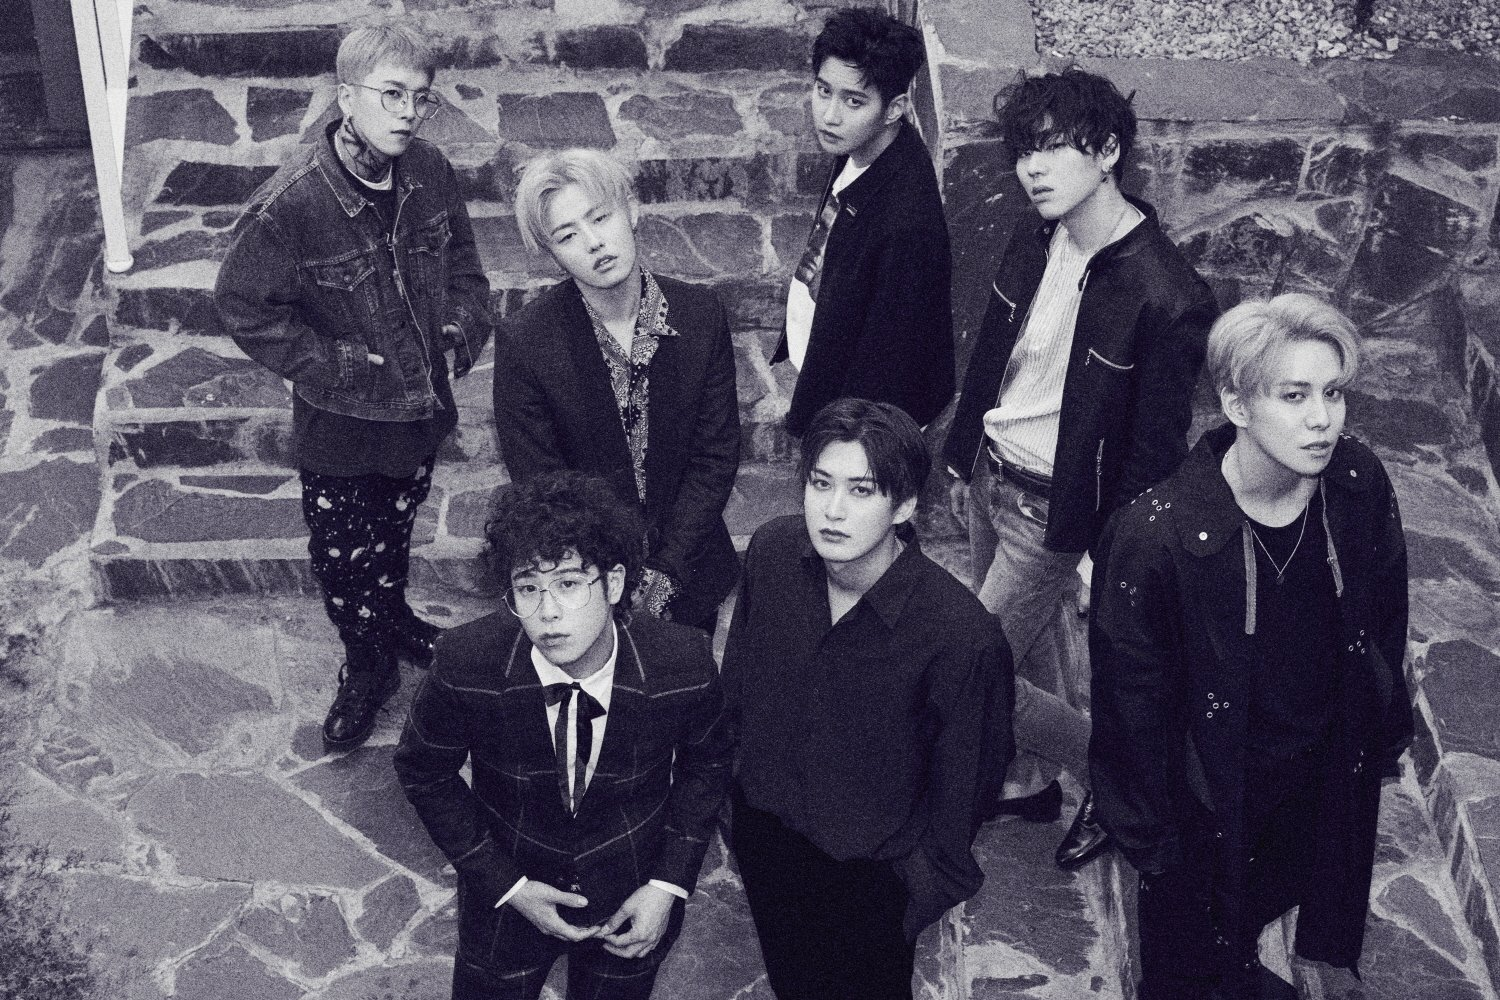 Block B Opens Up About Their Efforts To Showcase Each Member's Talents In Their New Mini Album